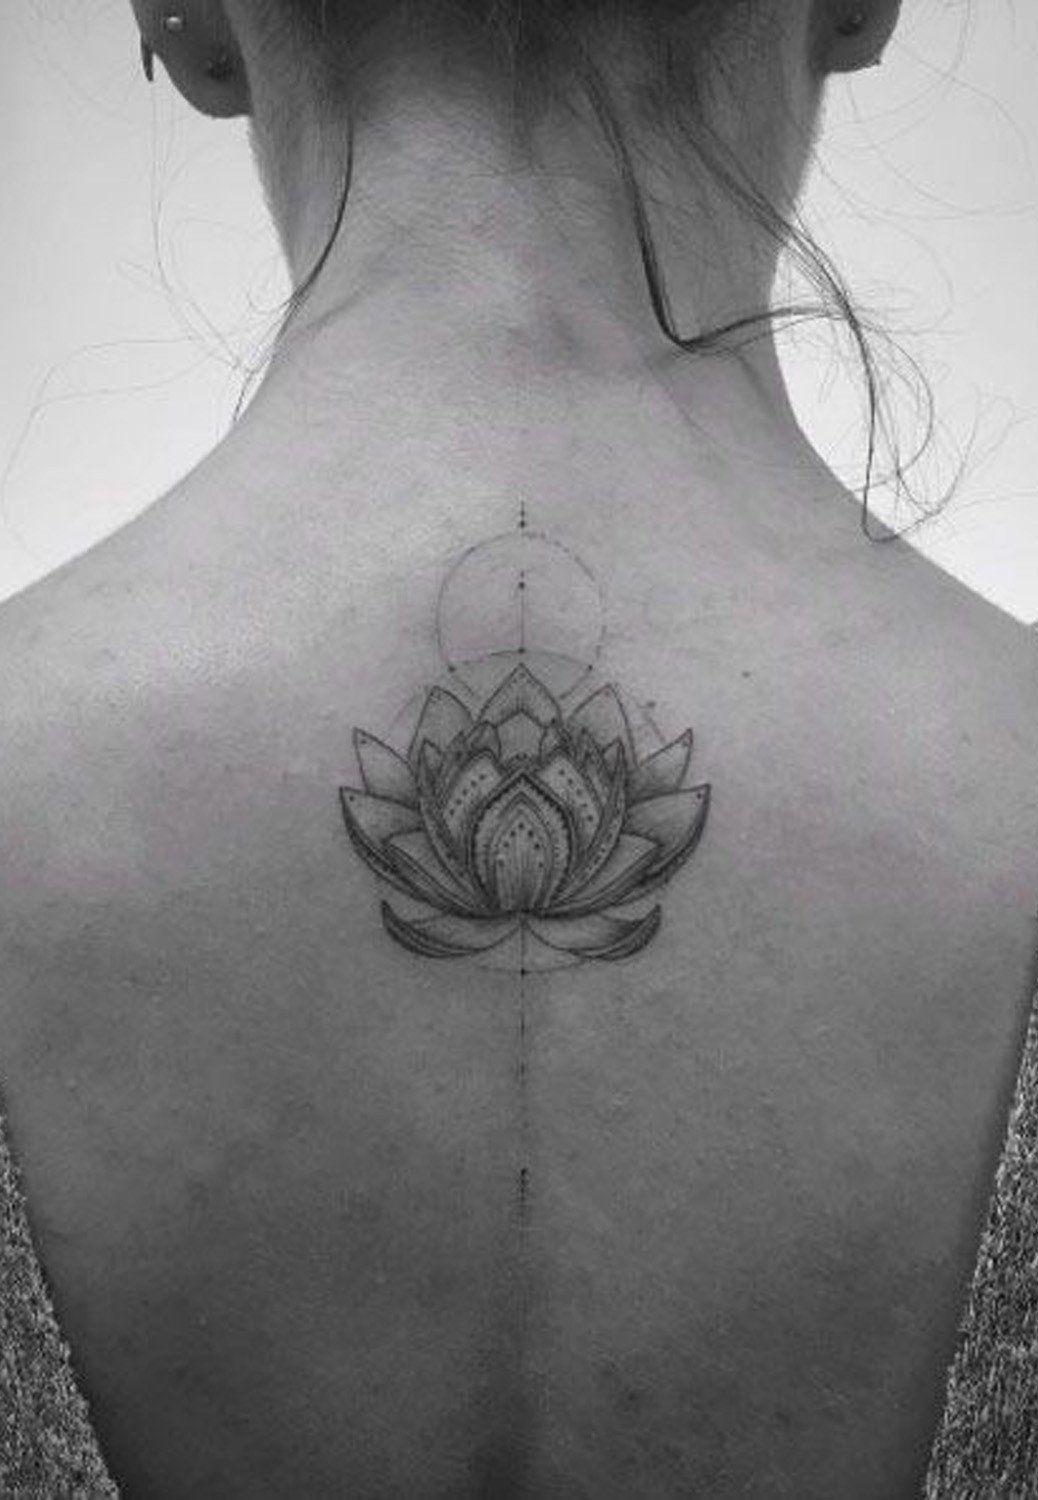 Geometric Lotus Upper Back Placement Tattoo Ideas For Women At Mybodiart Com Back Tattoo Women Upper Tattoos Girl Neck Tattoos